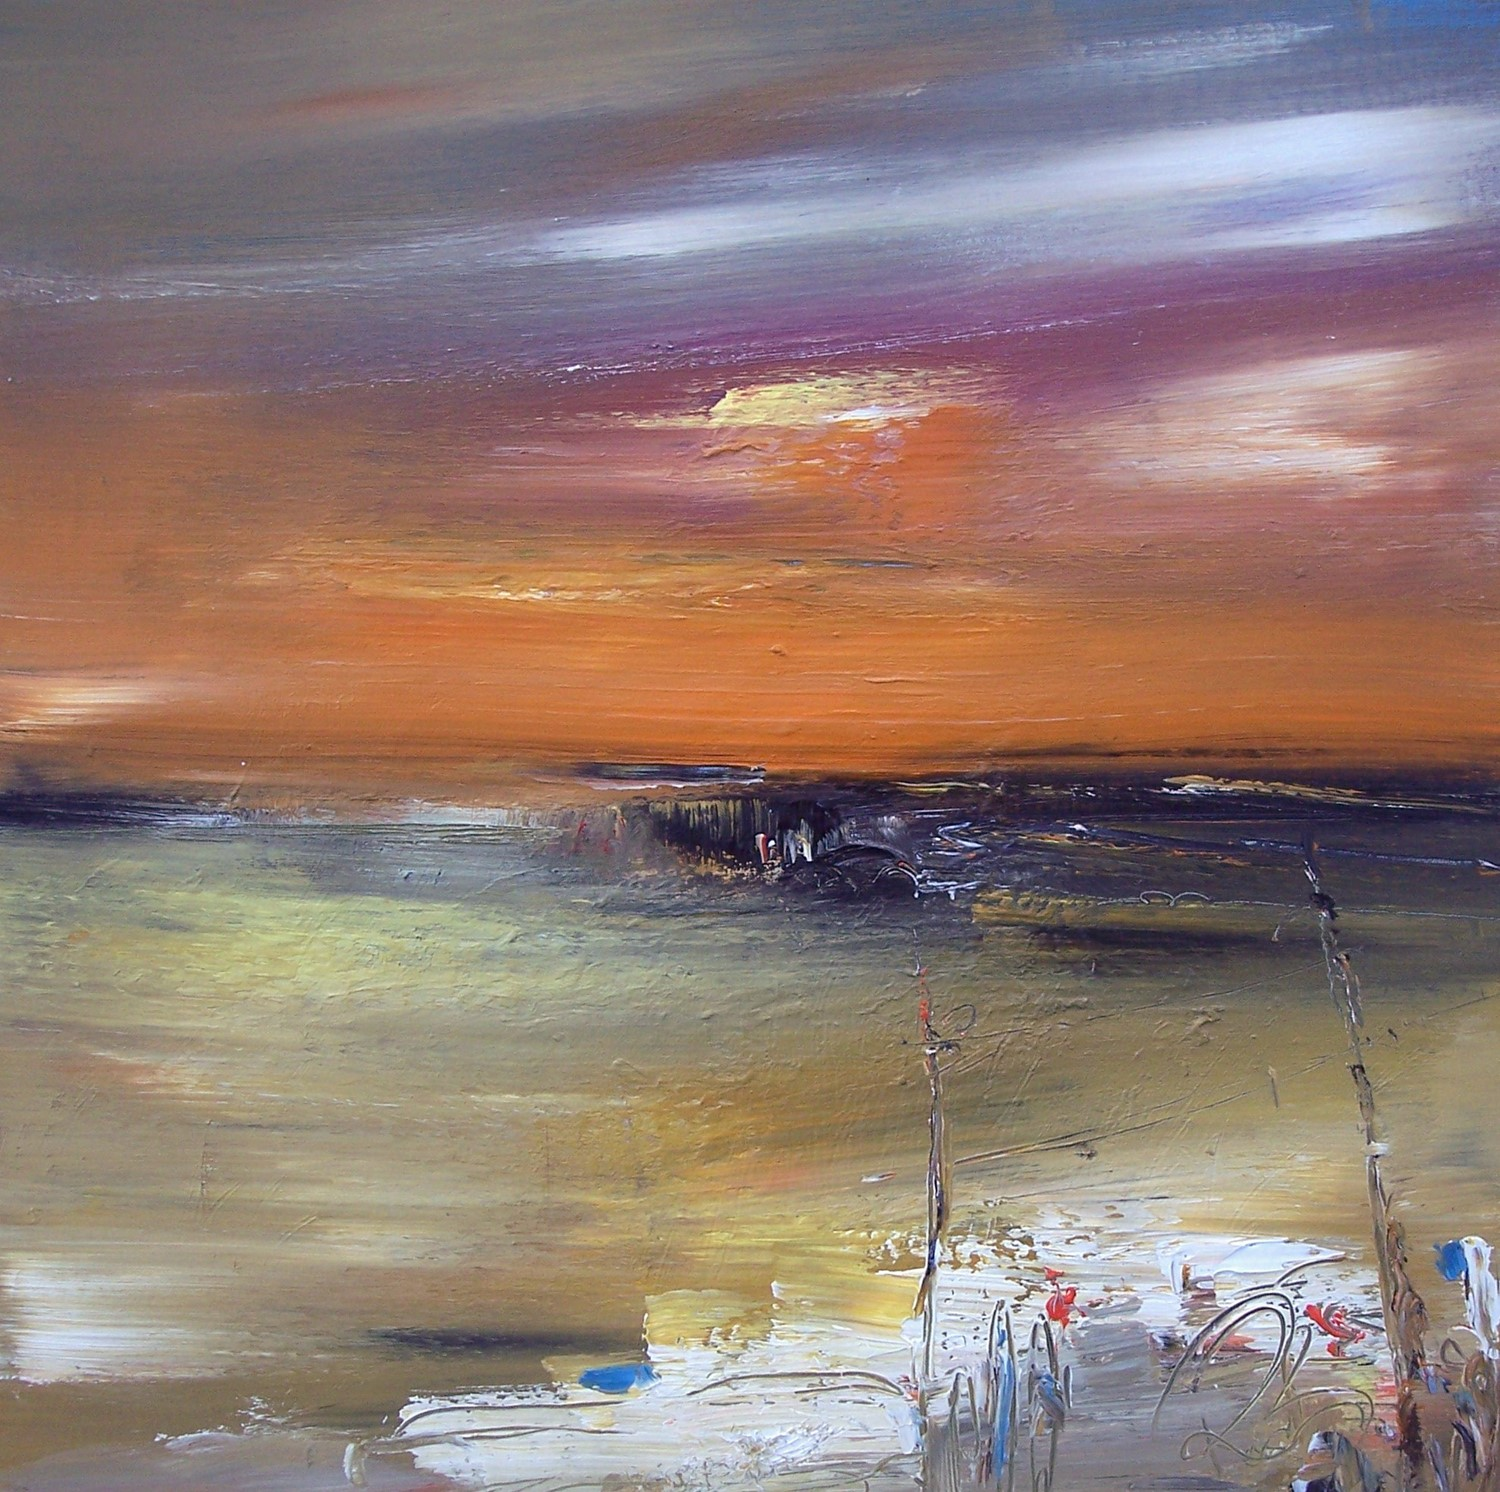 'Bay at Dusk' by artist Rosanne Barr